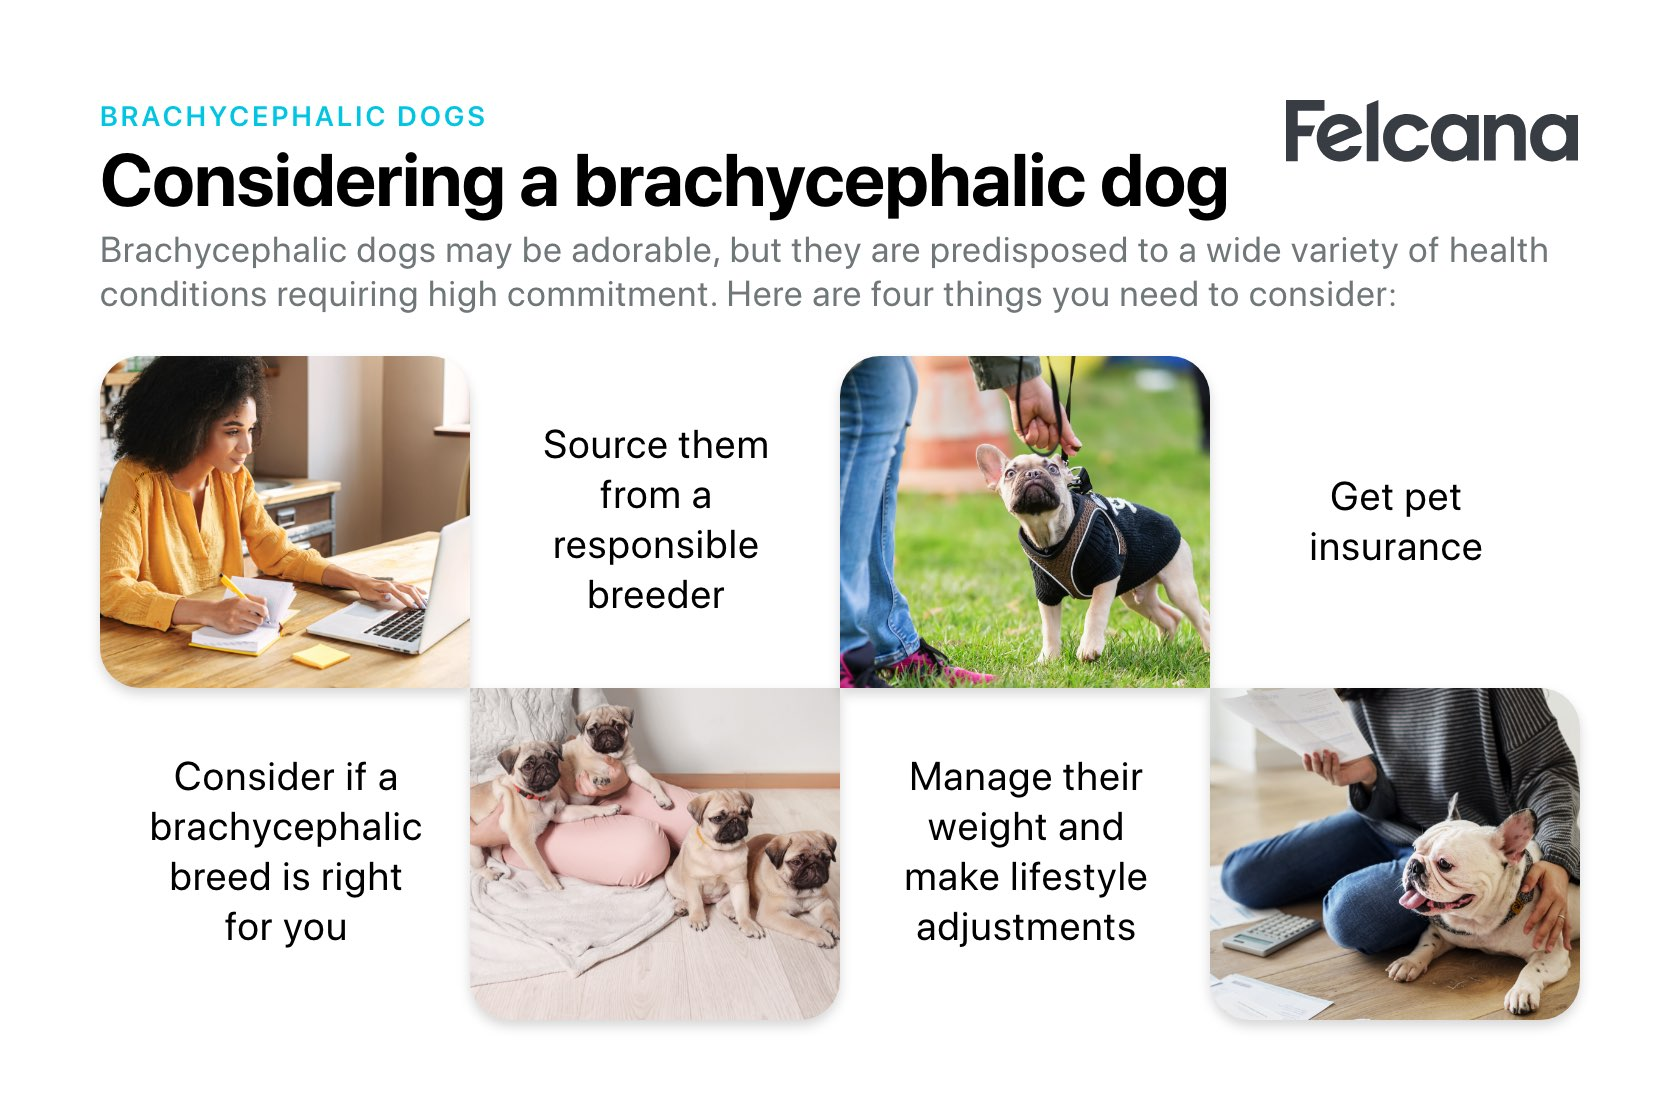 Considering a brachycephalic dog - Consider if the breed is right for you, source from a responsible breeder, make appropriate lifestyle changes and get pet insurance